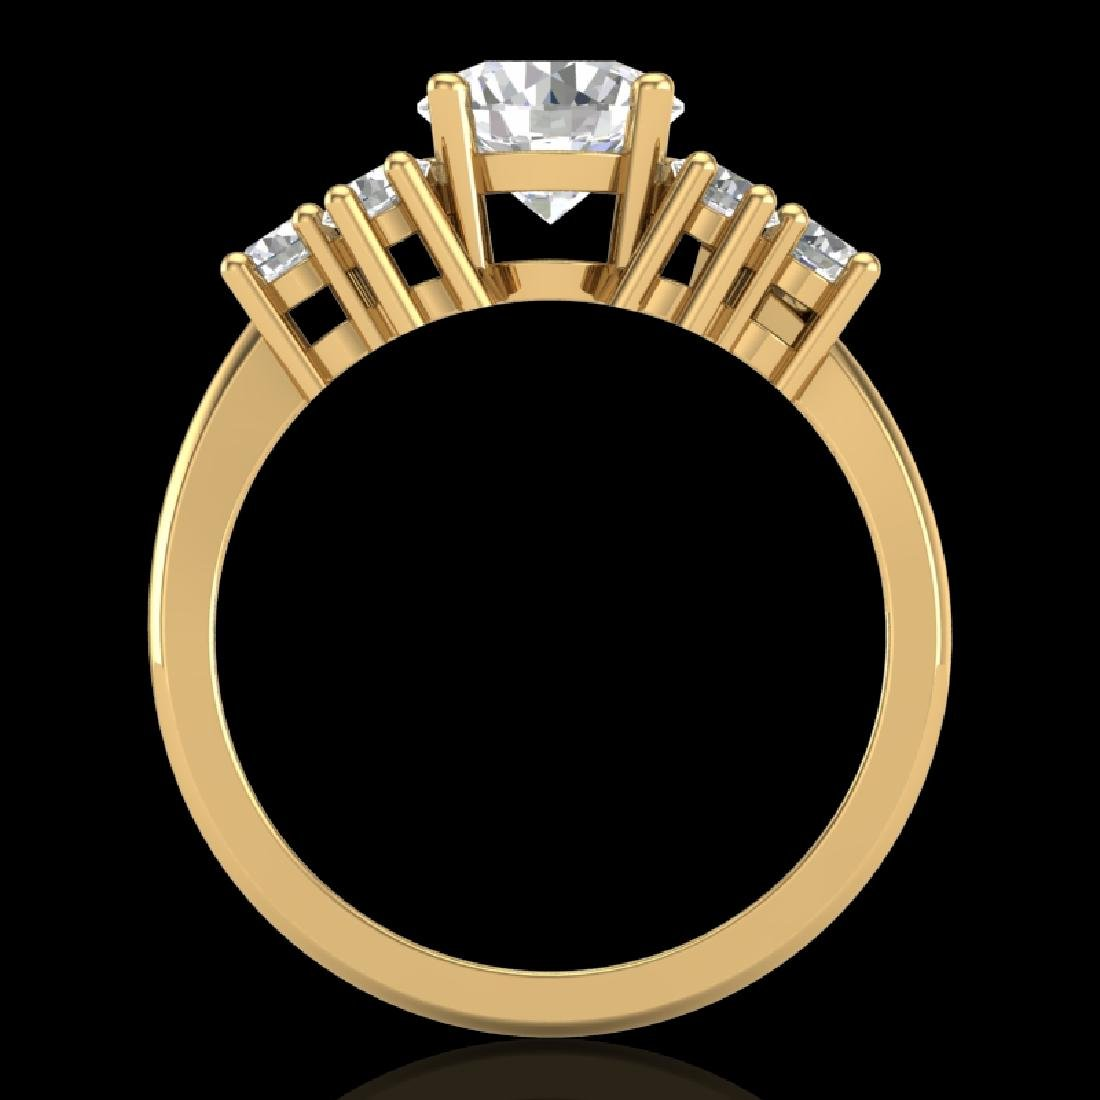 2.1 CTW VS/SI Diamond Solitaire Ring 18K Yellow Gold